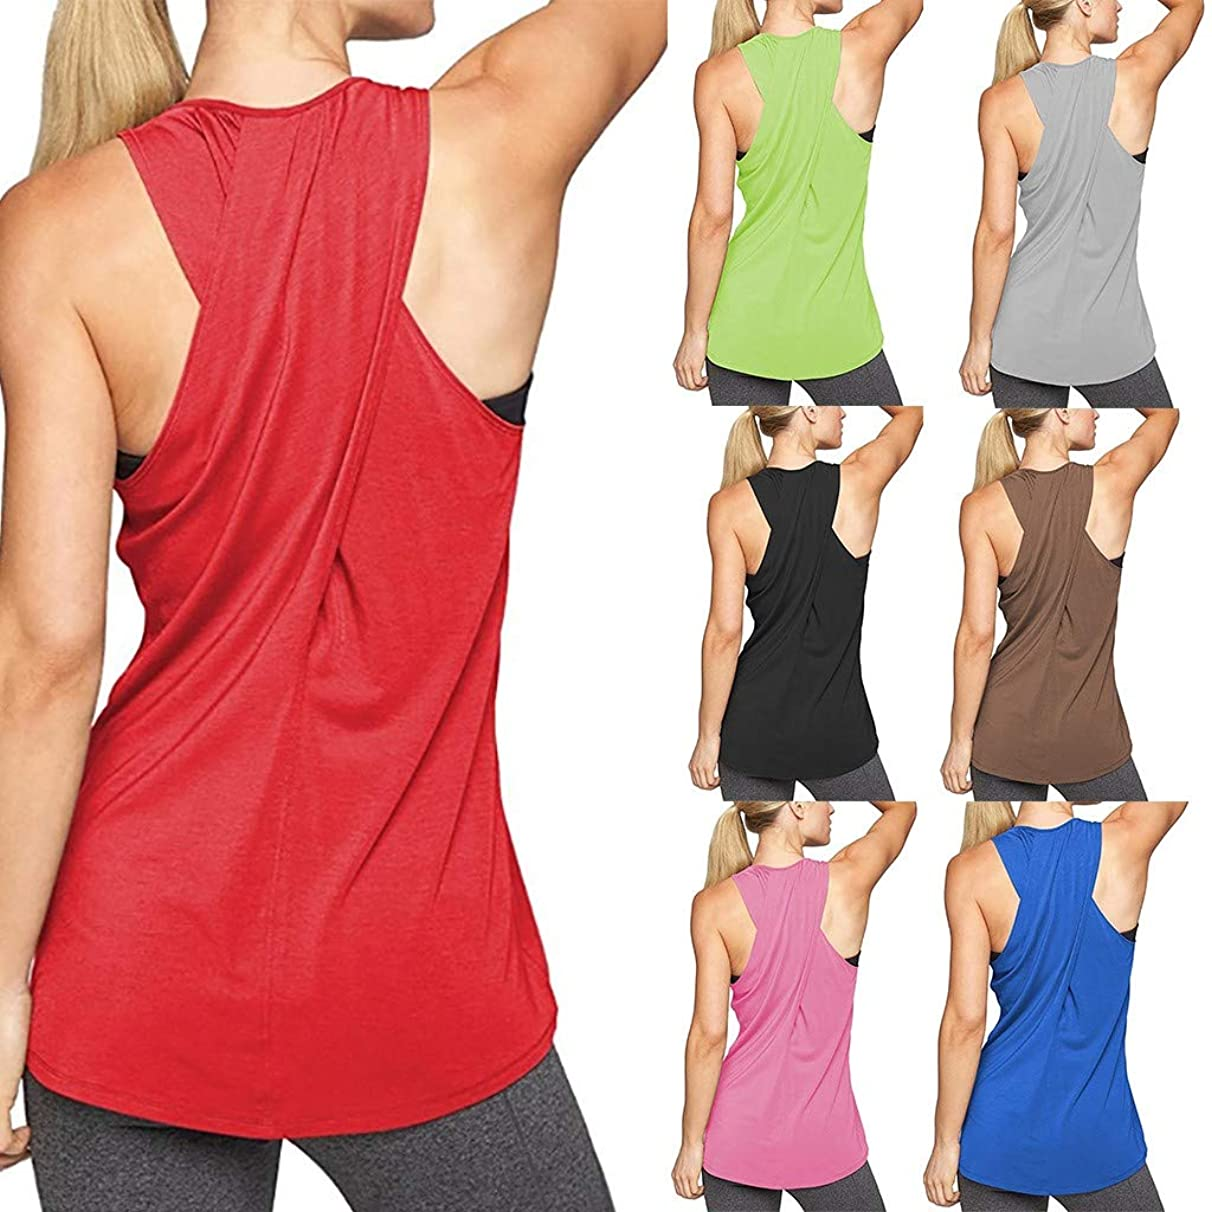 Nacome_Promotion Womens Tops,Summer Activewear Running Workouts Clothes Yoga Racerback Tank Tops